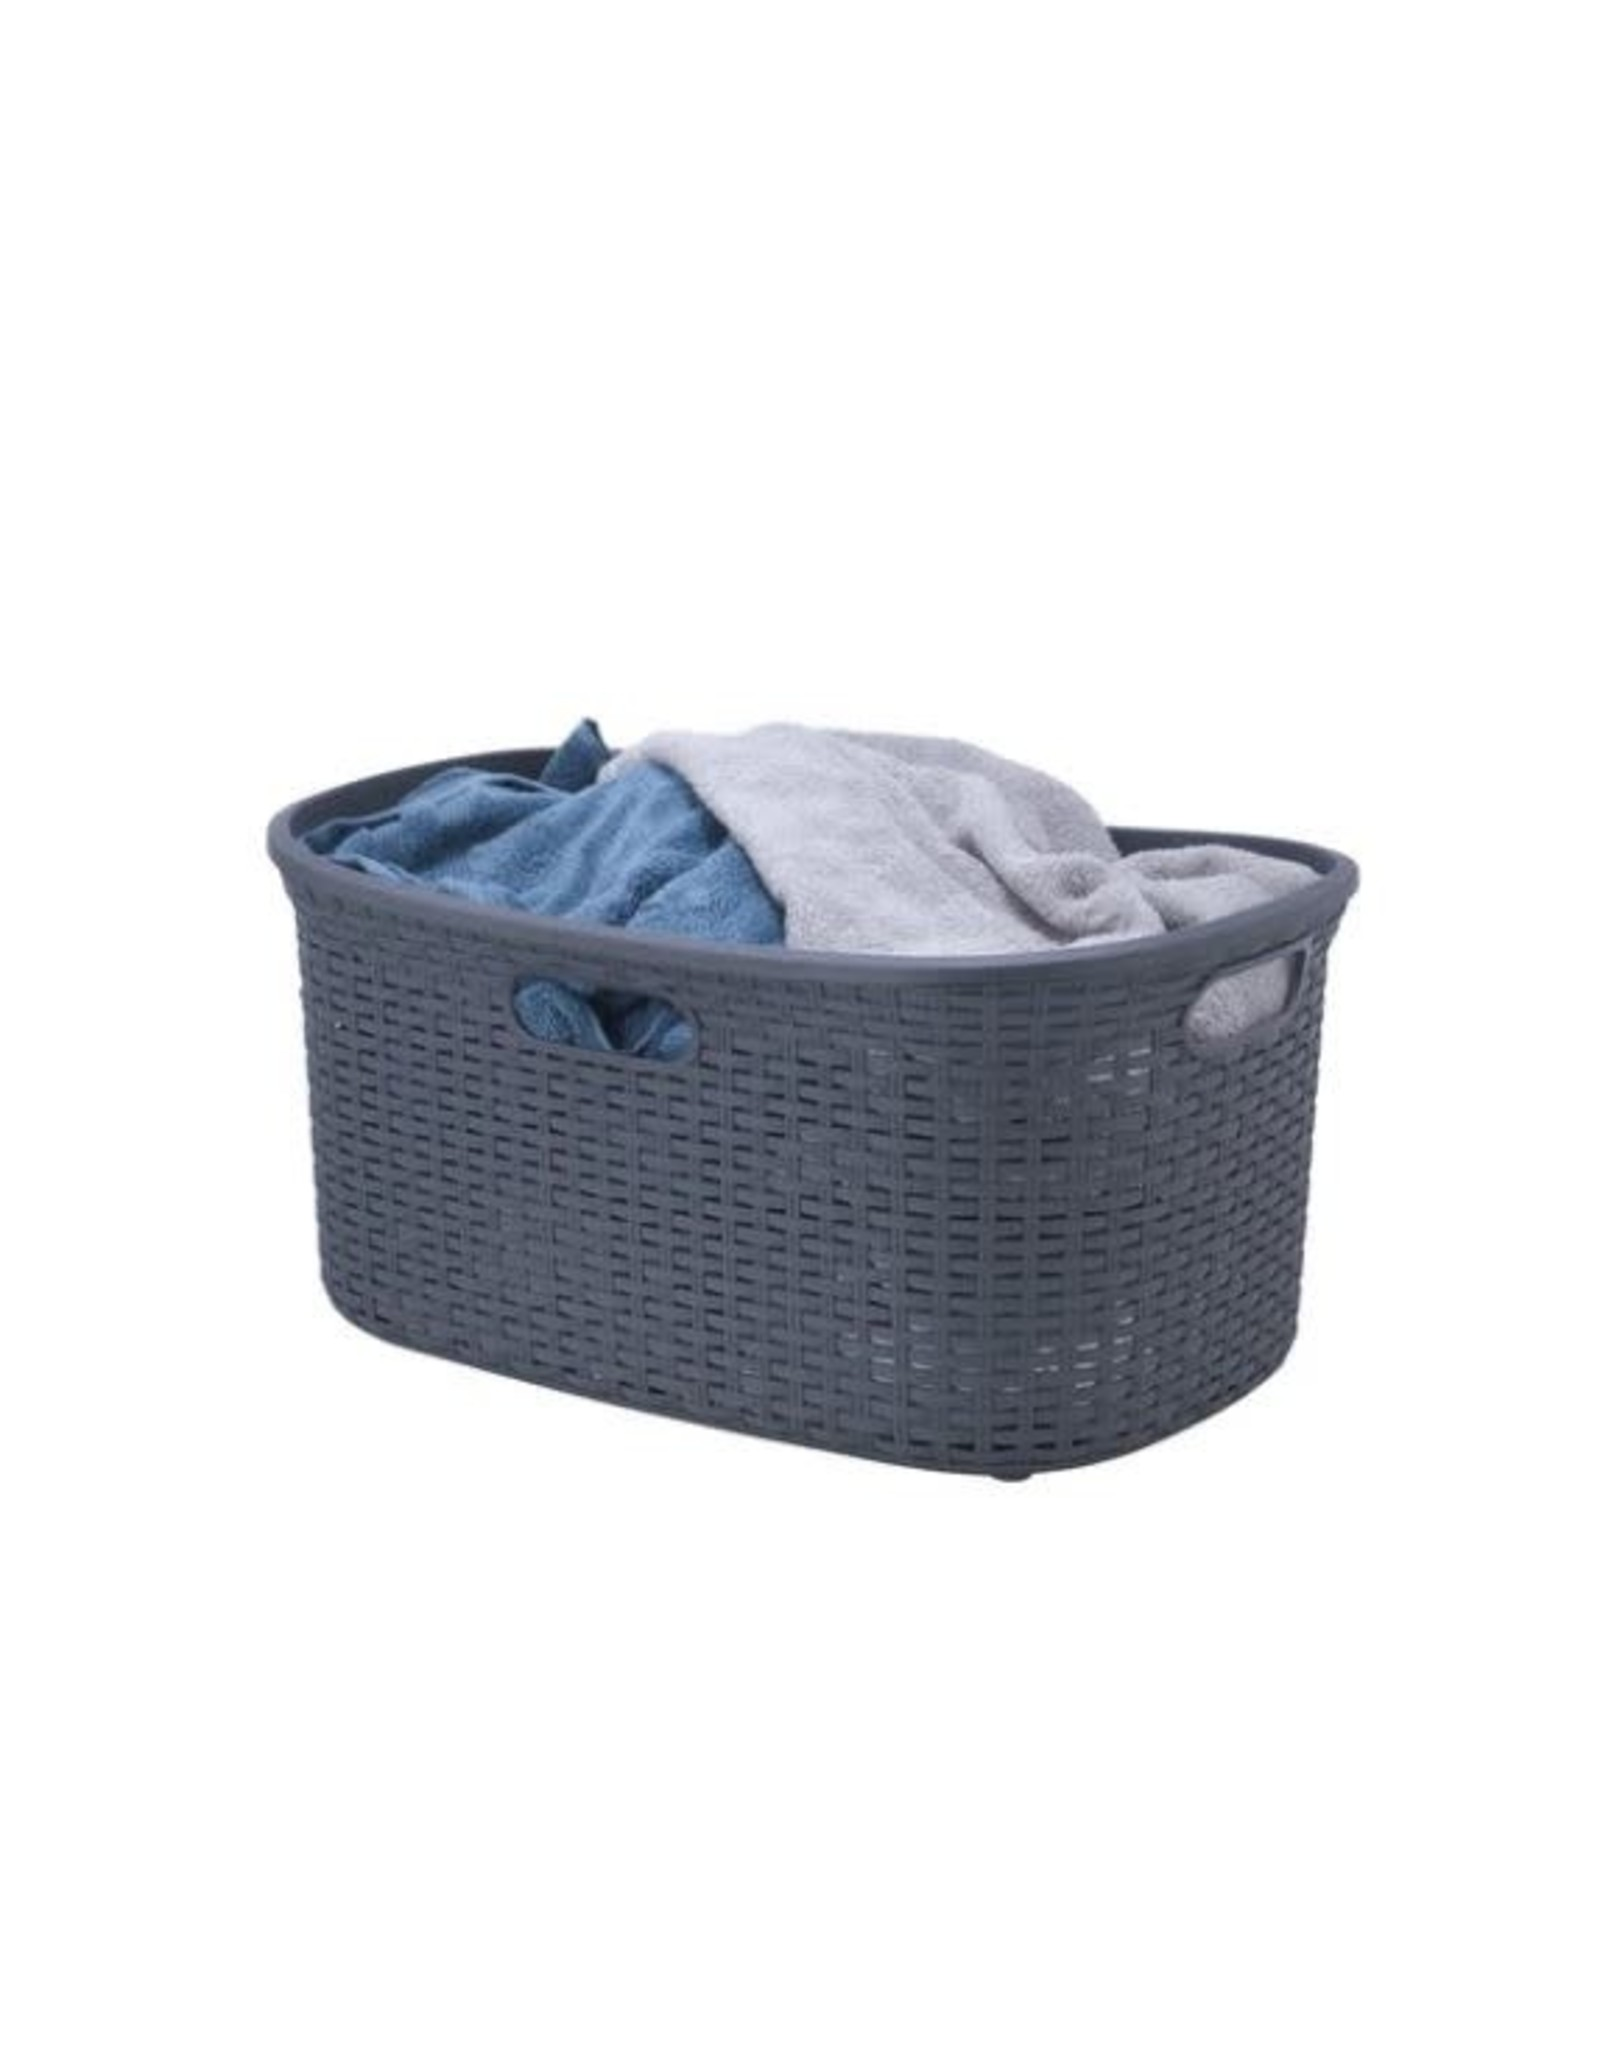 Palm Luxe 1.15 Grey Laundry Basket